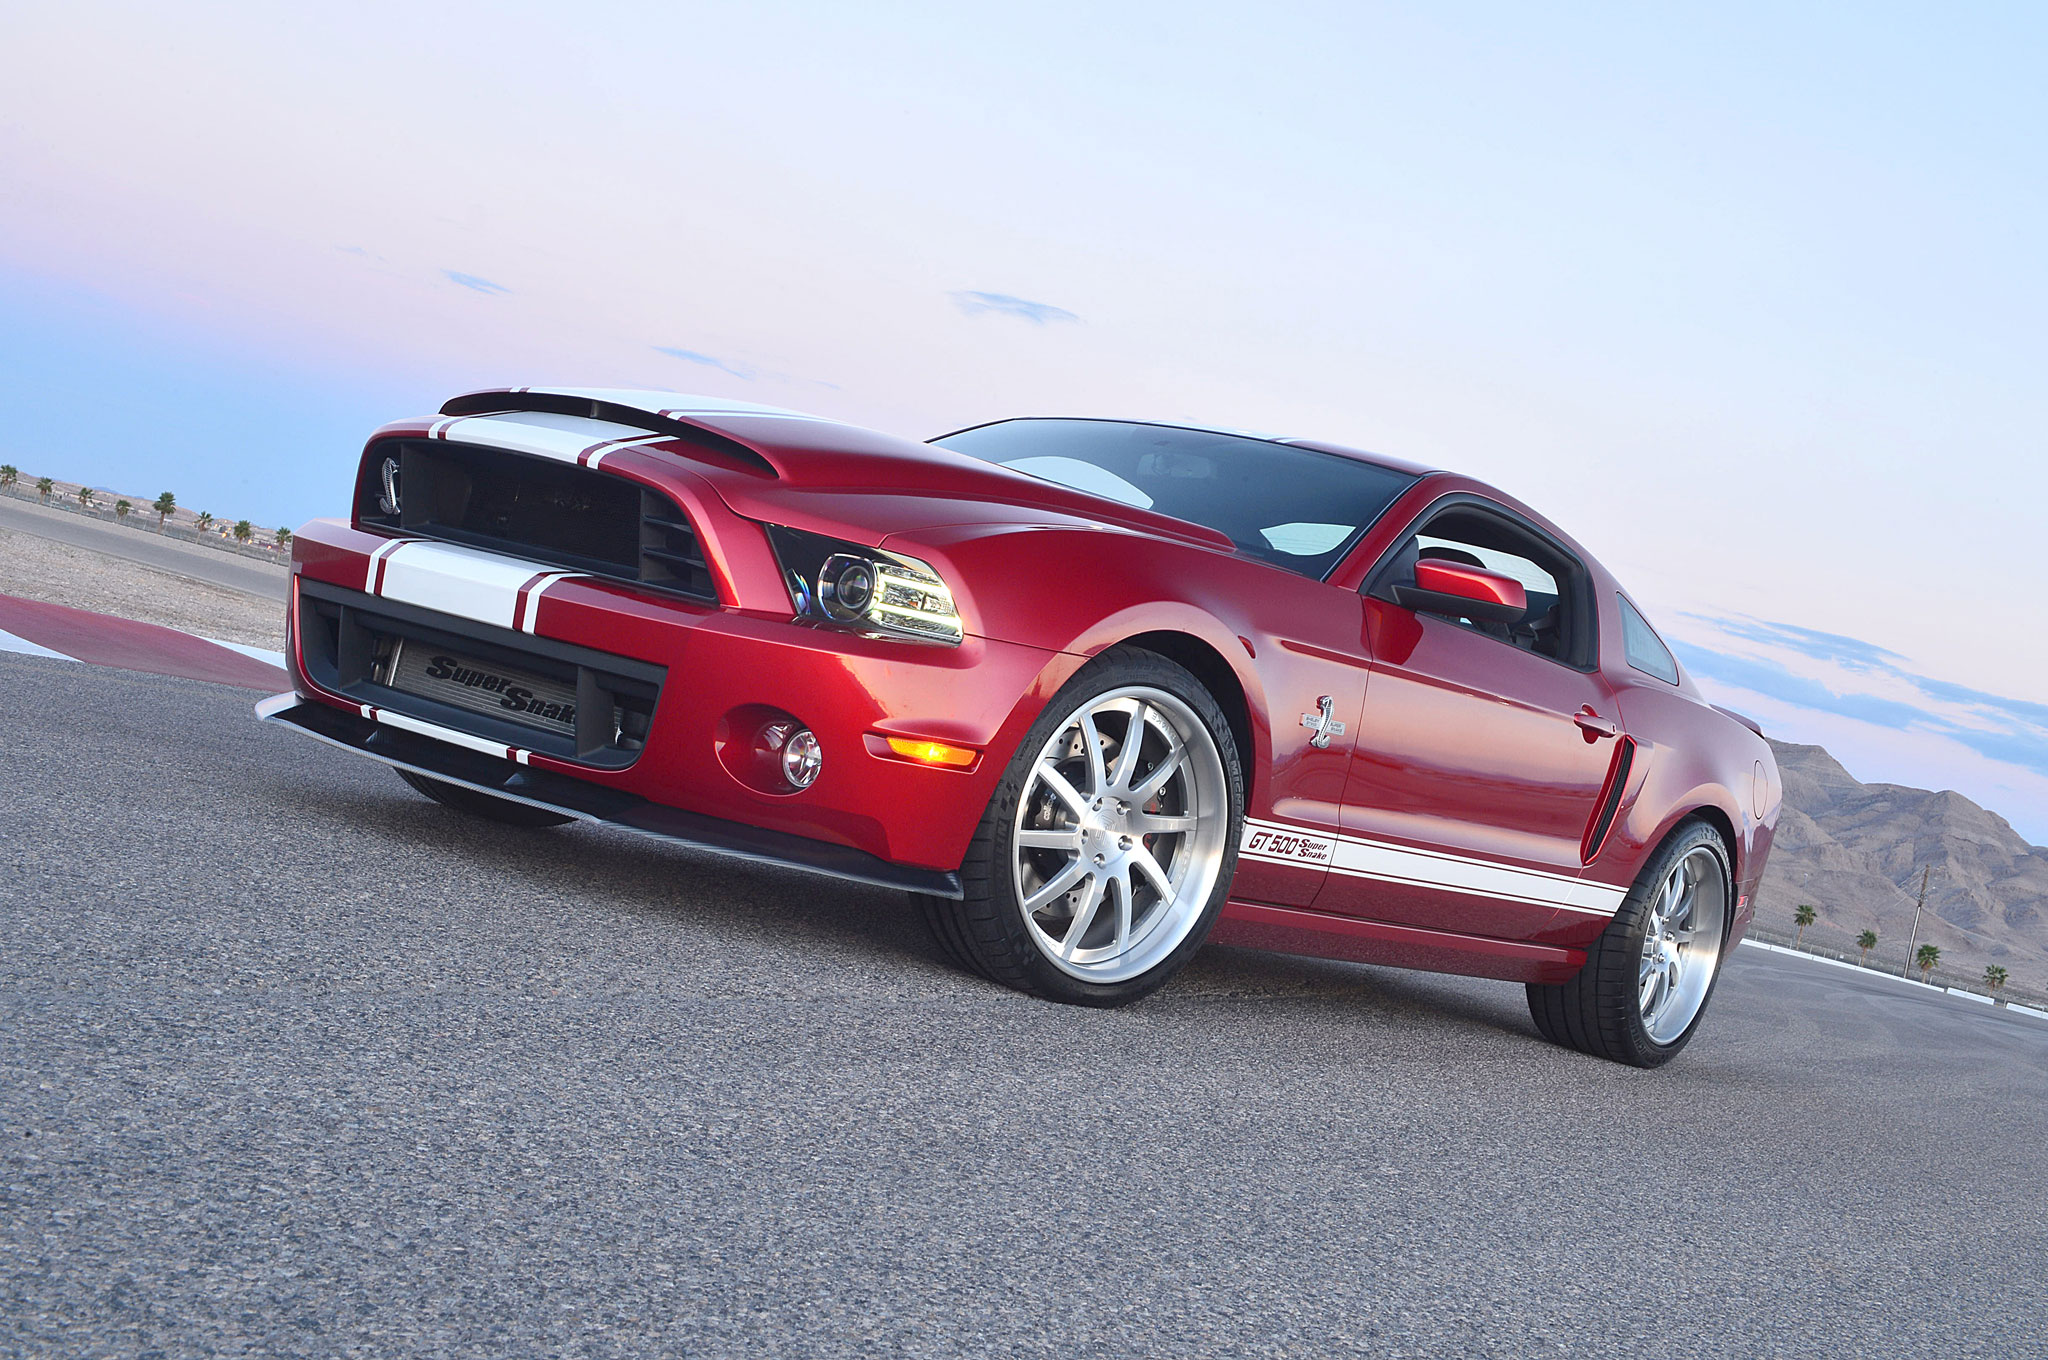 2013 Shelby Gt500 Super Snake First Drive Automobile